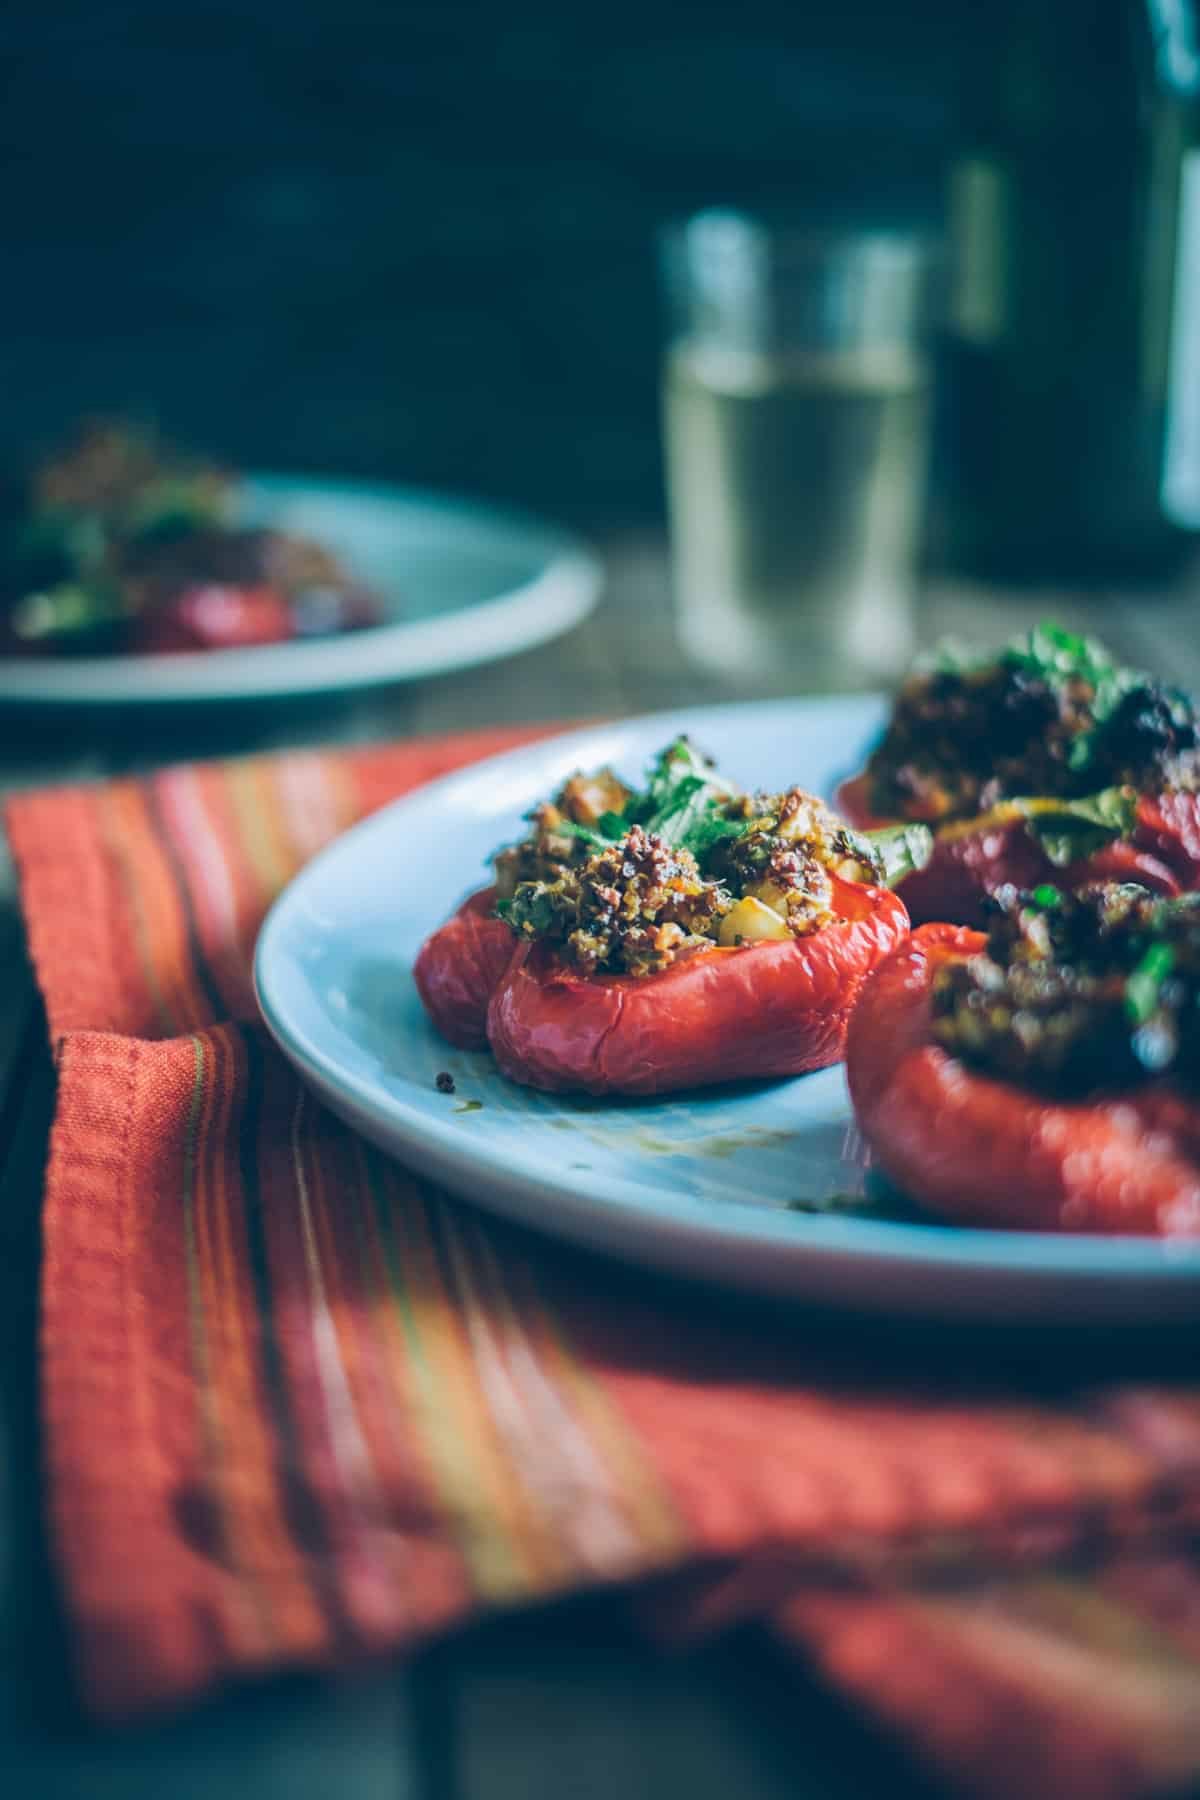 red peppers stuffed with quinoa on a plate